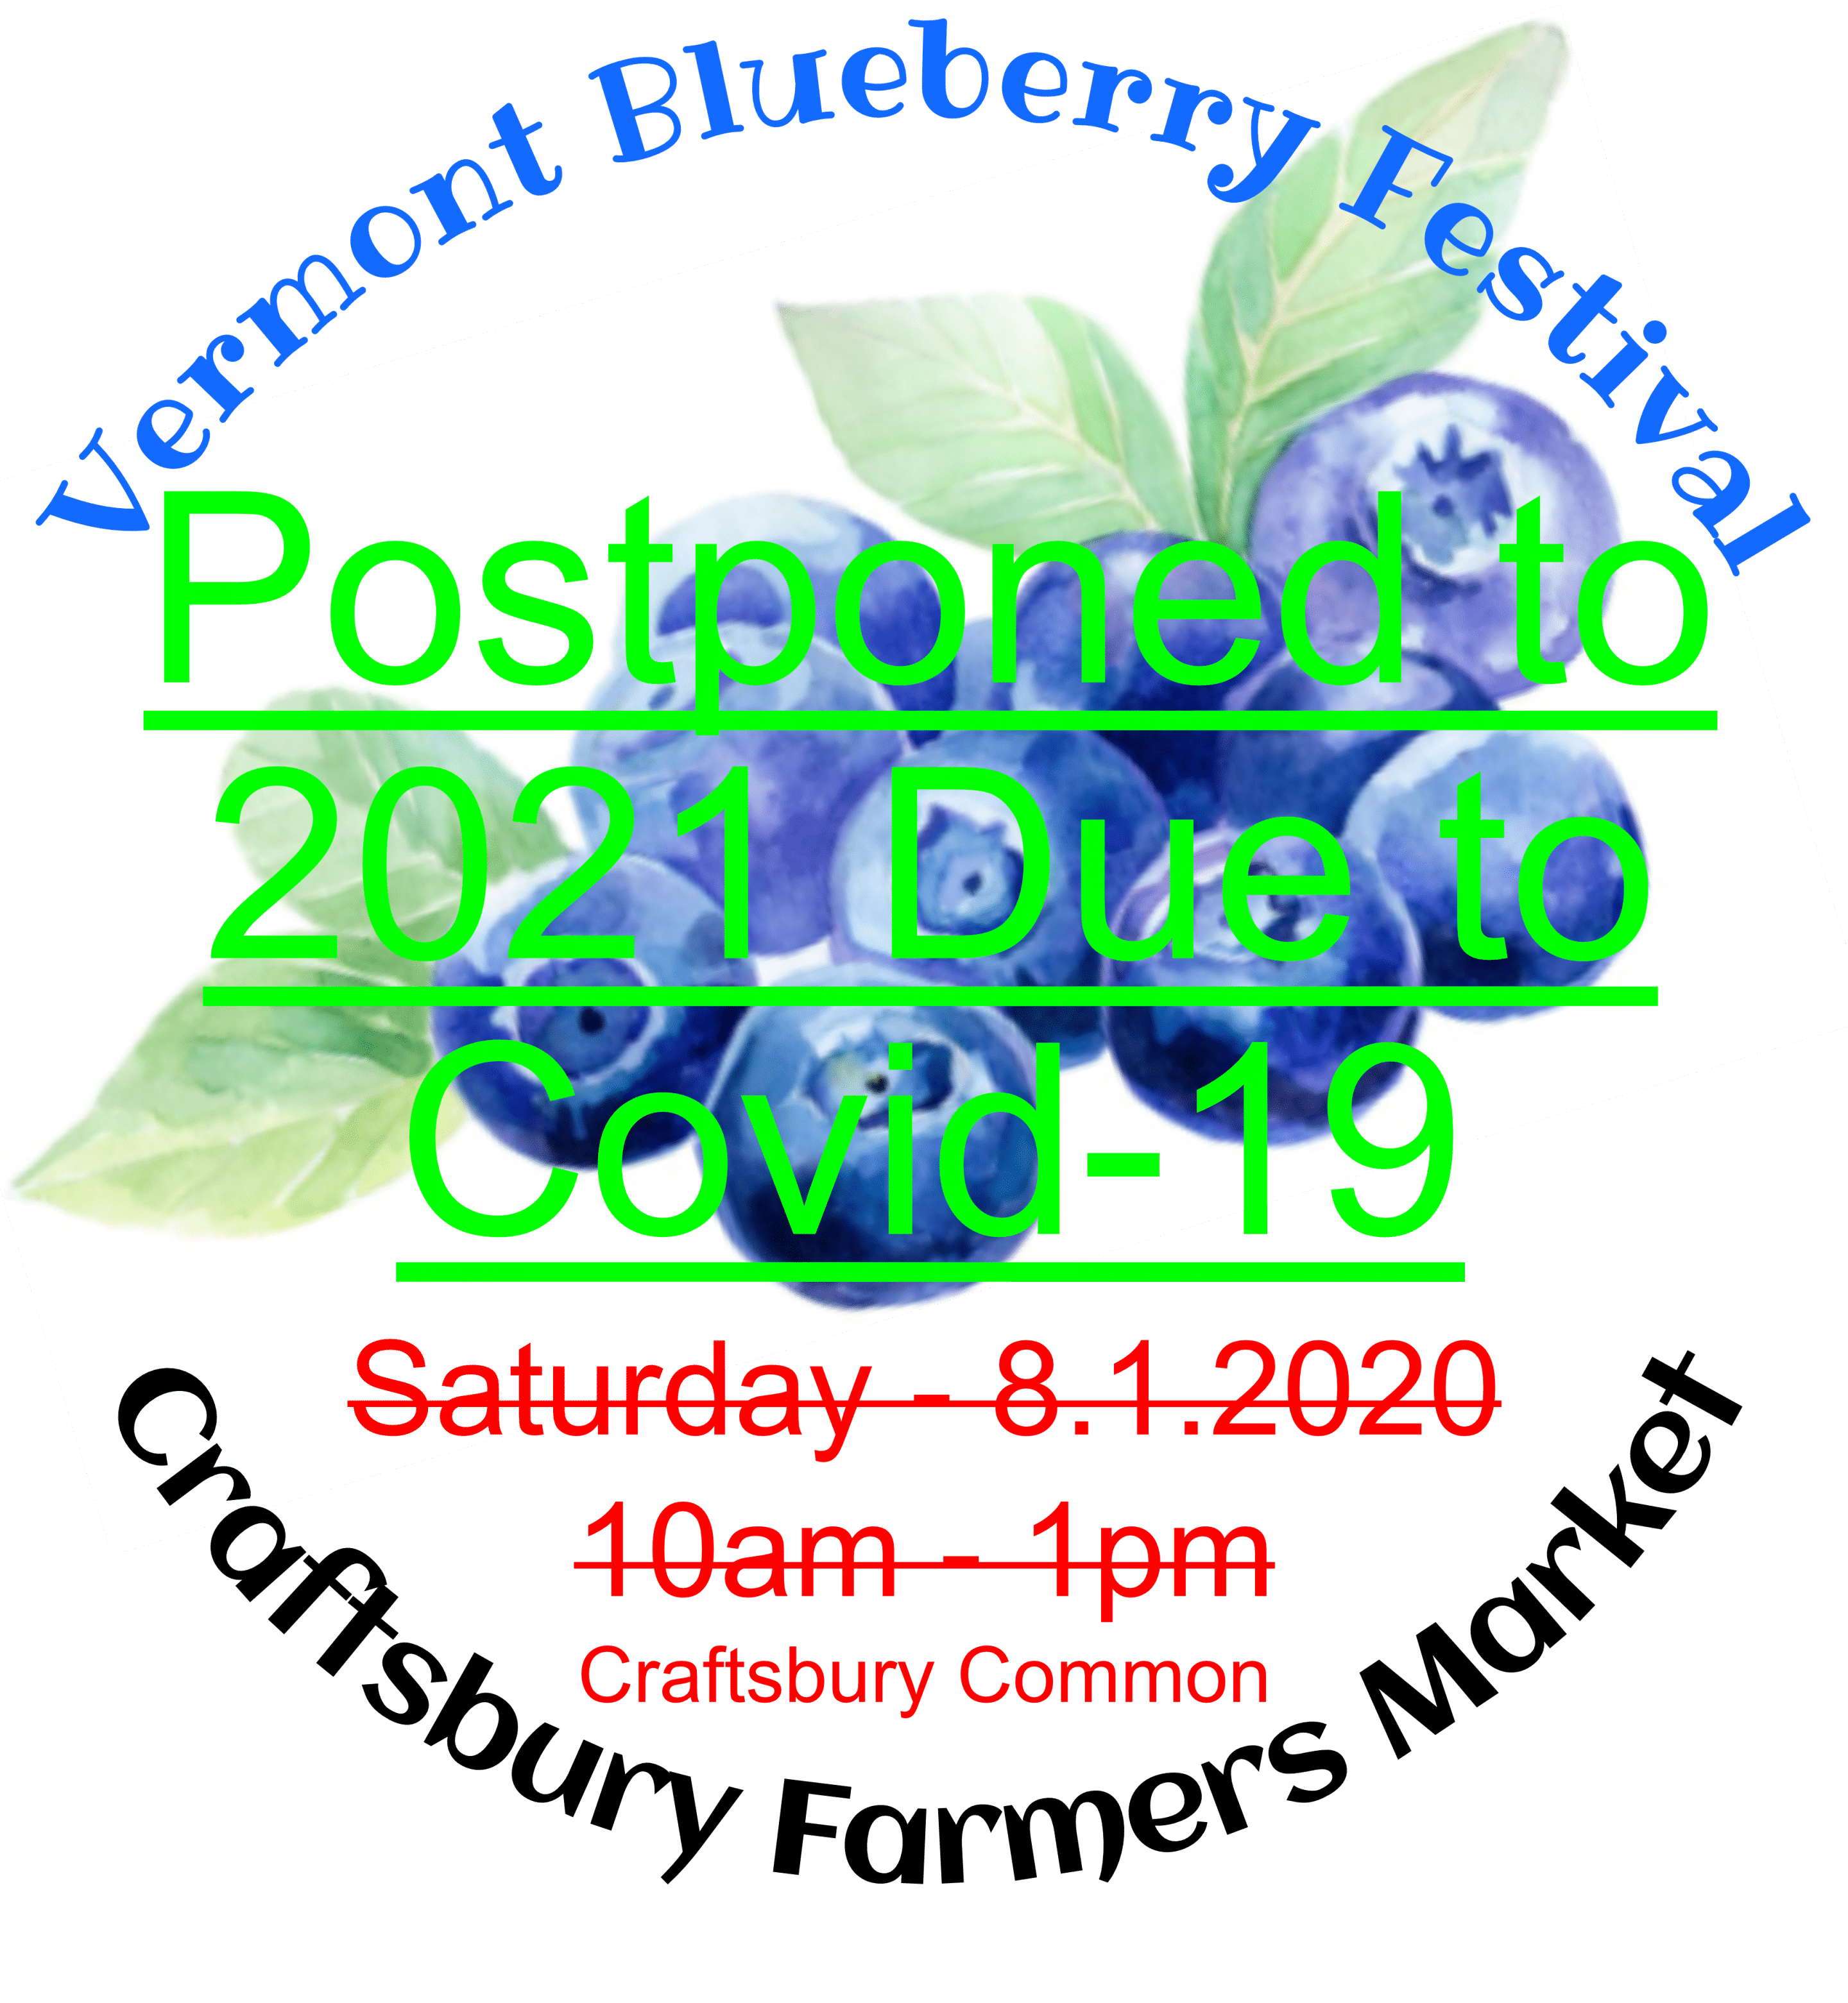 Vermont Blueberry Festival - Postponed until 2021 Due to Covid-19.